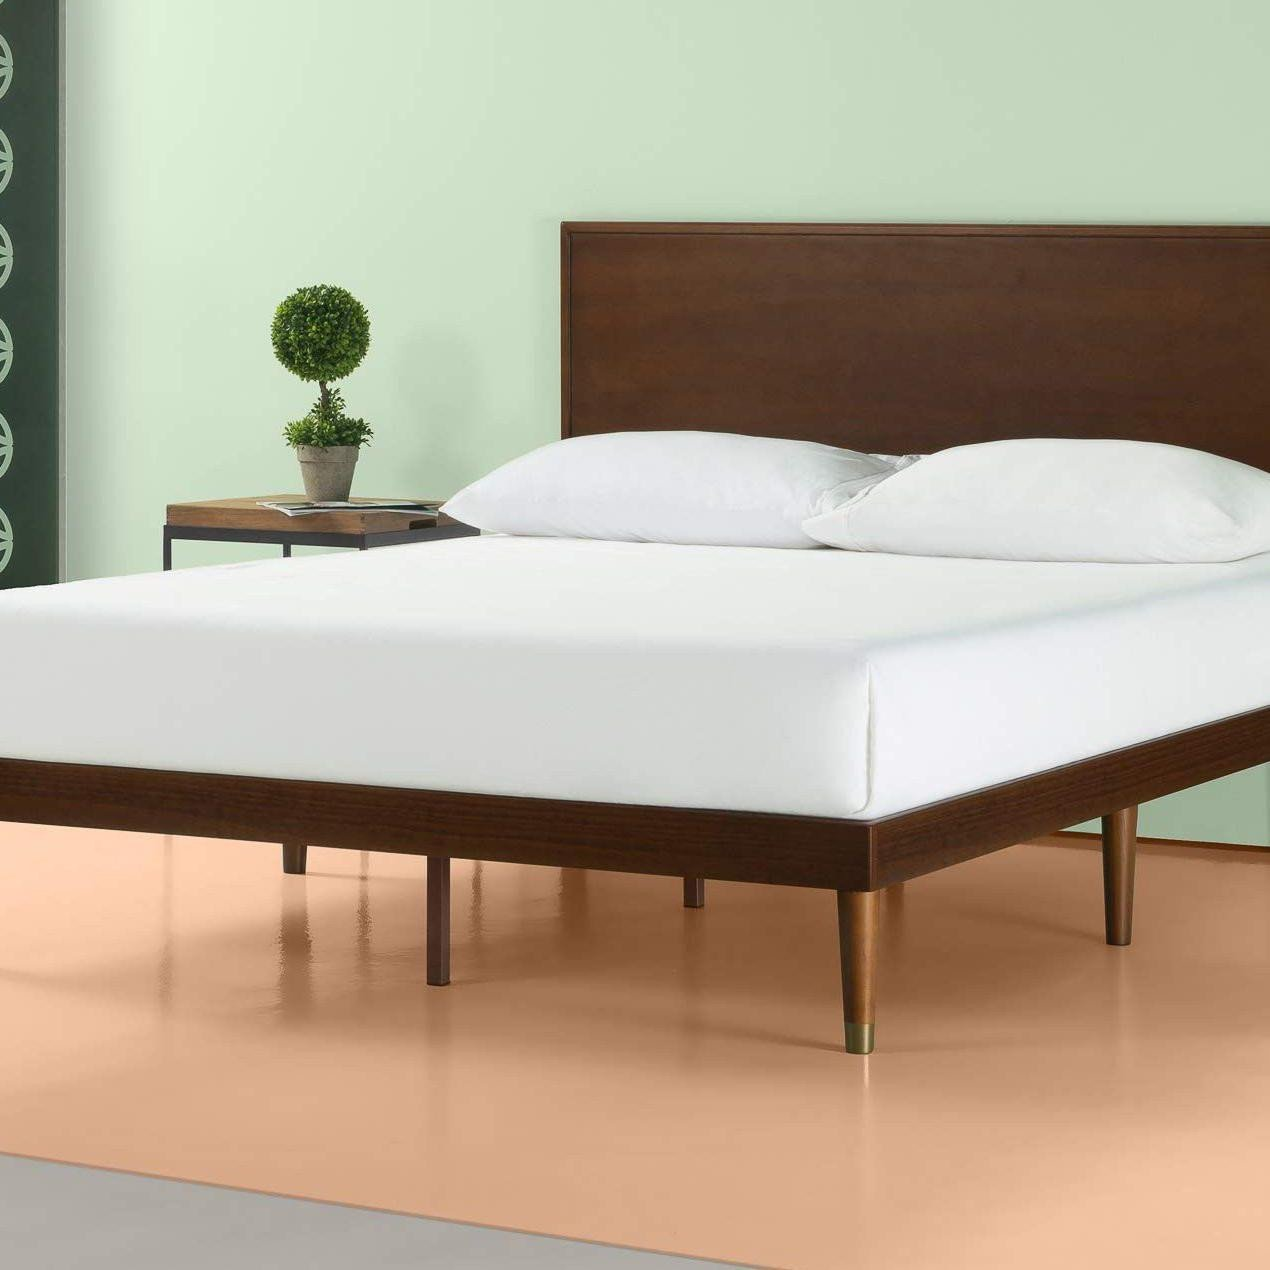 Solid Wood Bedroom Set Unique Get A West Elm Look for Under $300 with This Mid Century Bed